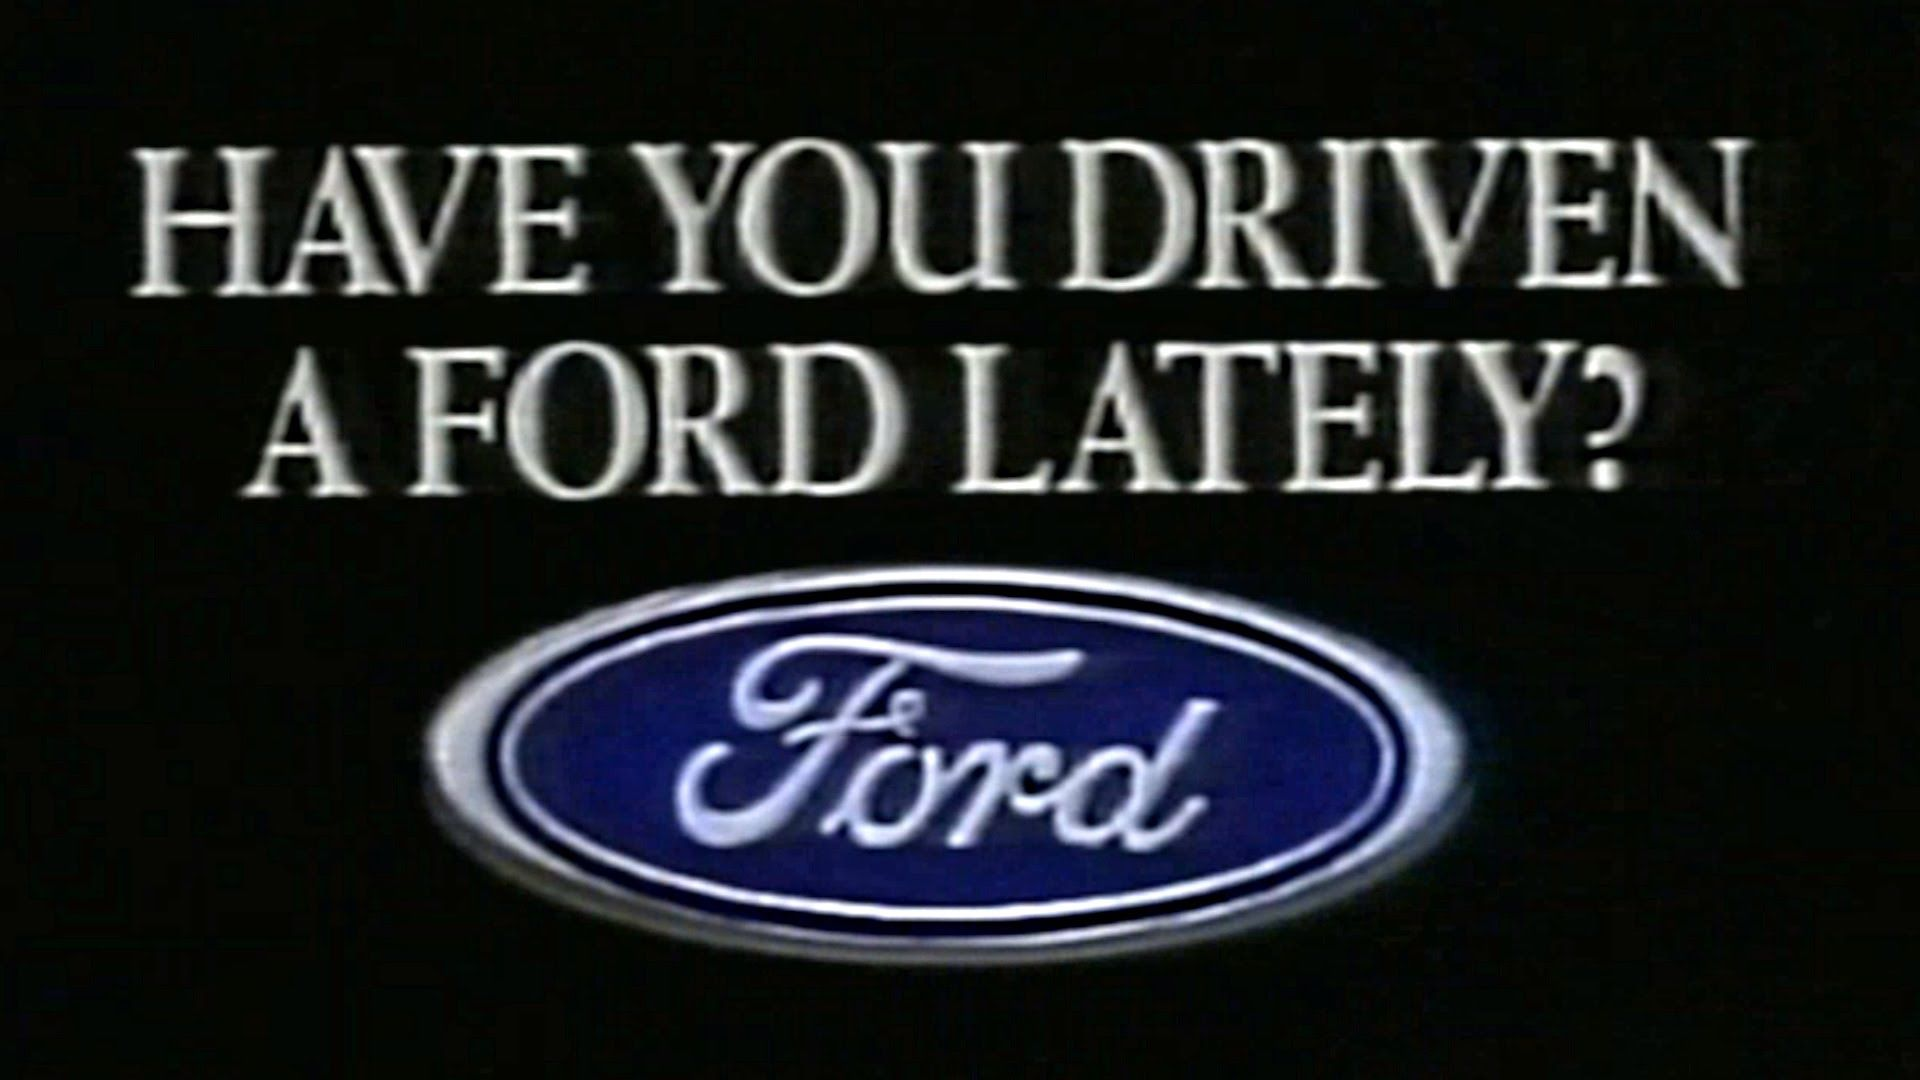 """Have you driven a Ford…lately?"" was a well crafted marketing slogan which utilized the 3 C's."